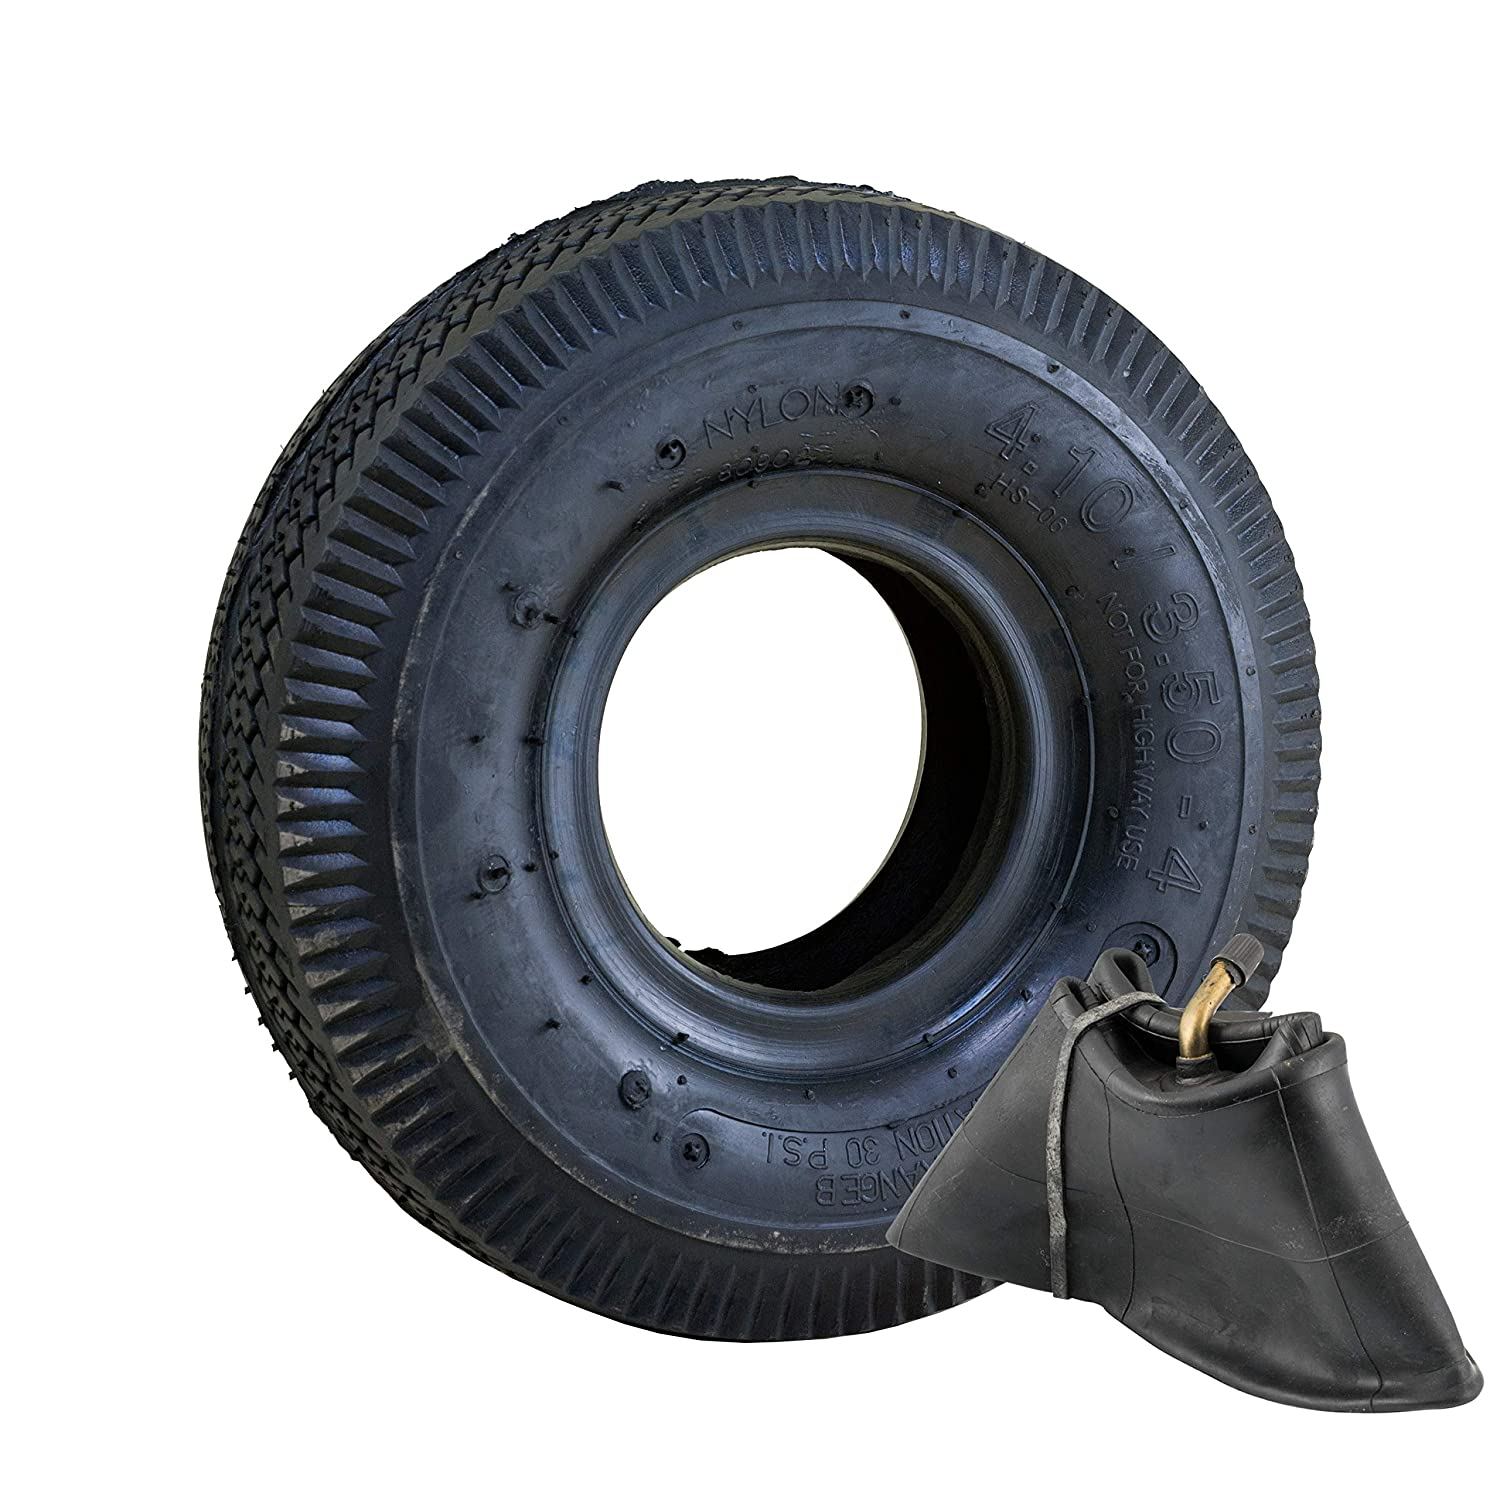 "Marathon 4.10/3.50-4"" Pneumatic (Air Filled) Hand Truck / All Purpose Utility Tire and Inner Tube"